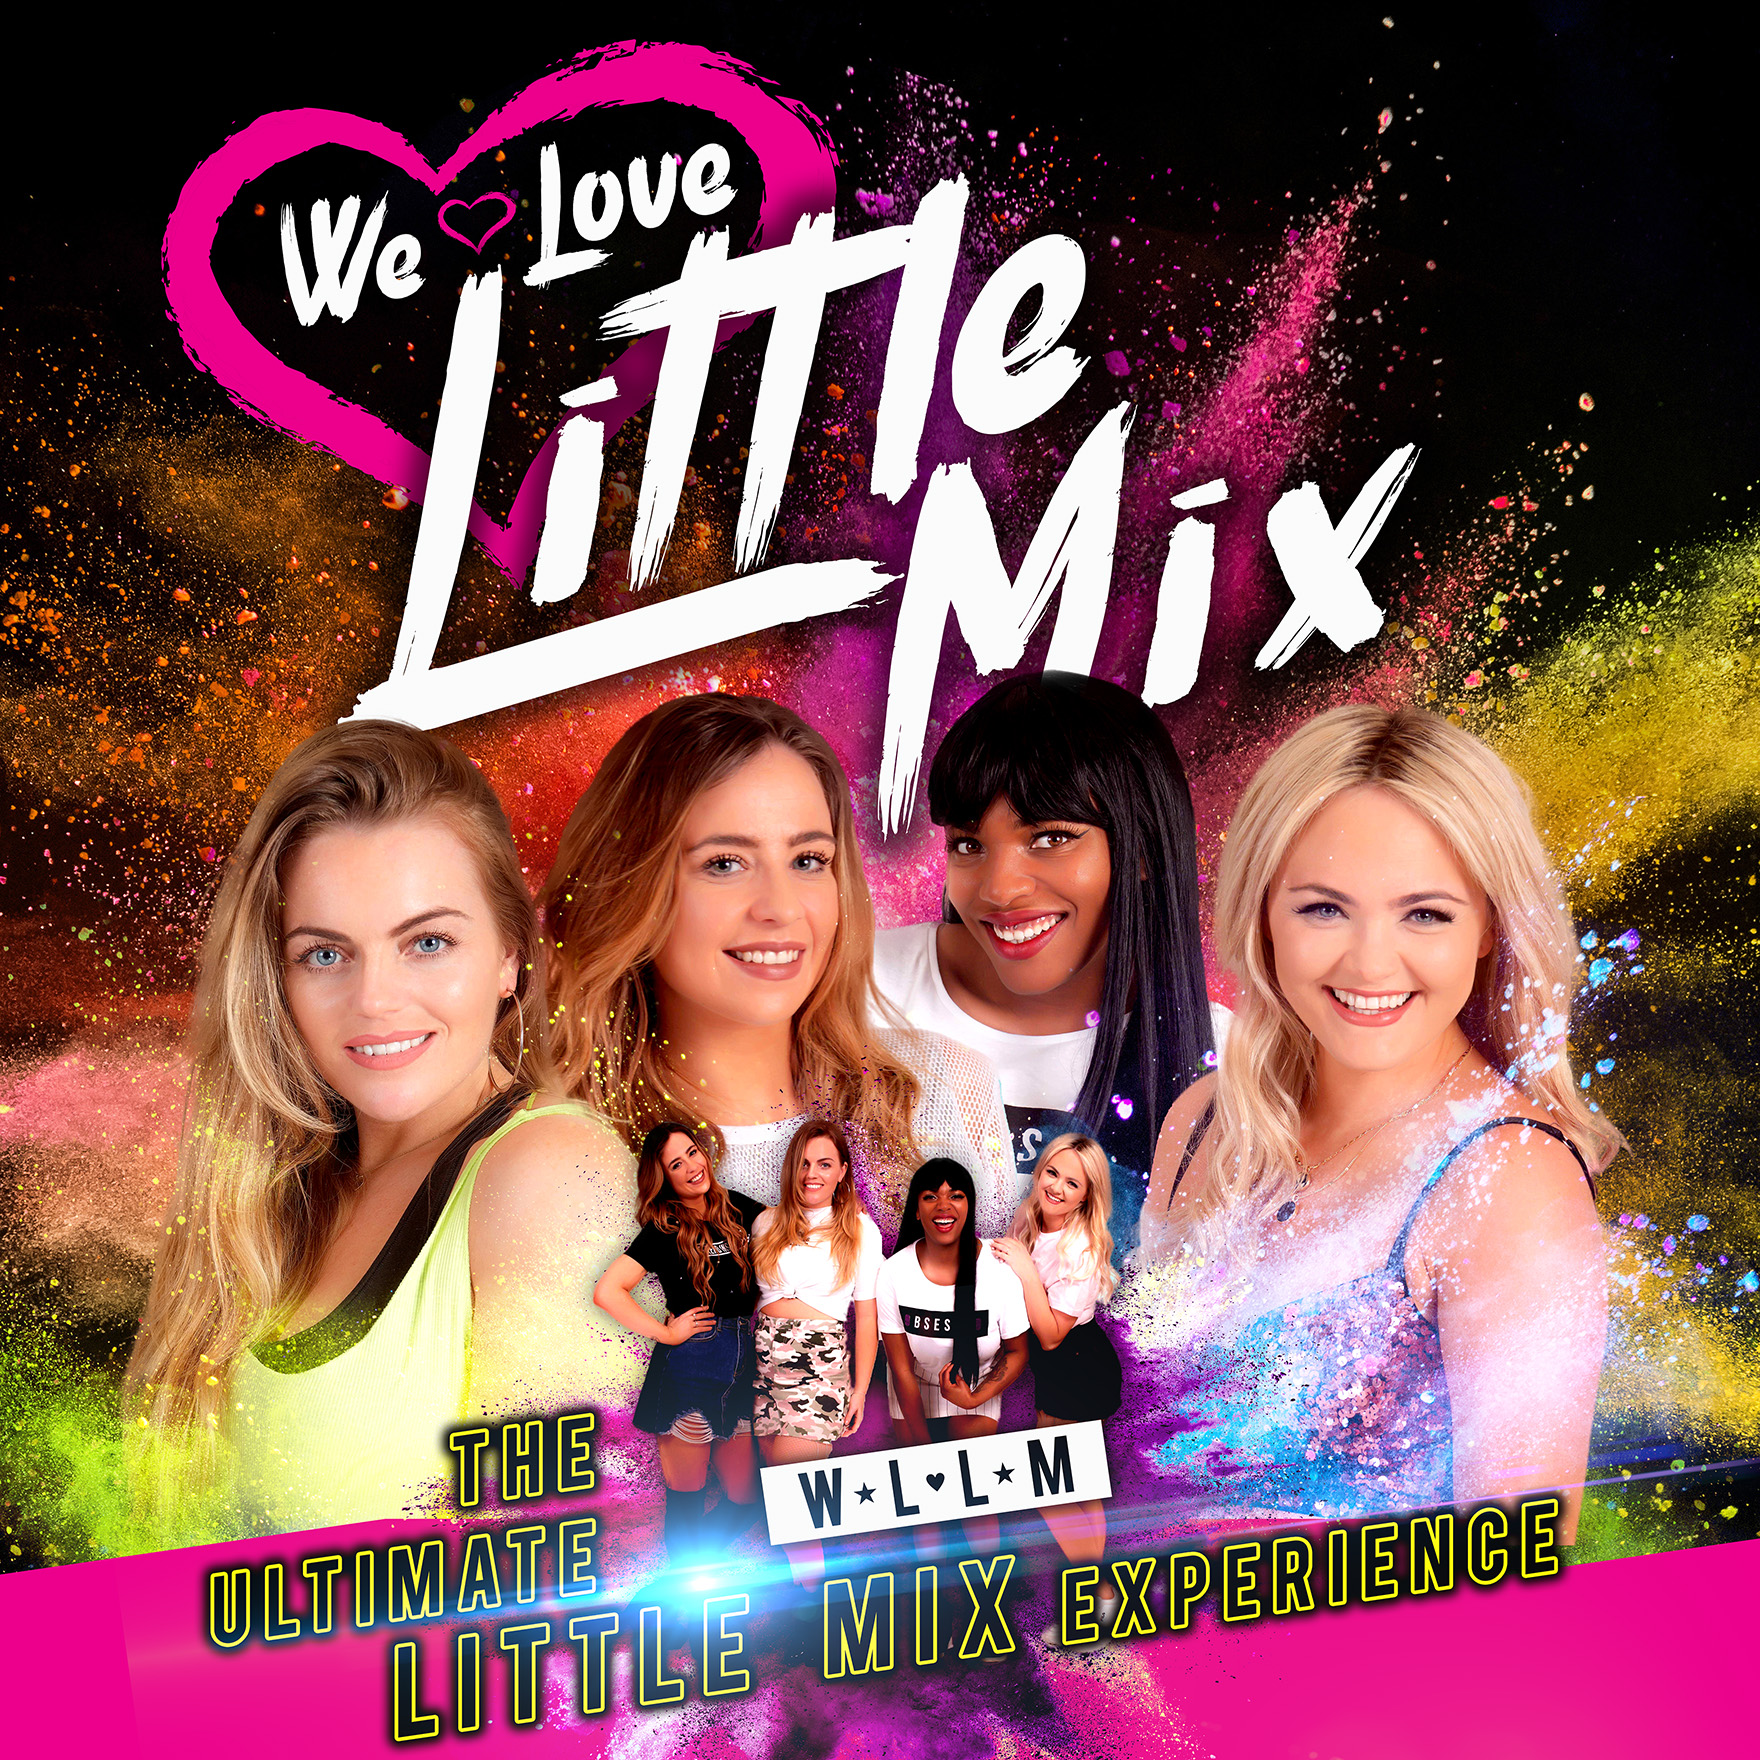 We Love Little Mix: The Ultimate Little Mix Experience